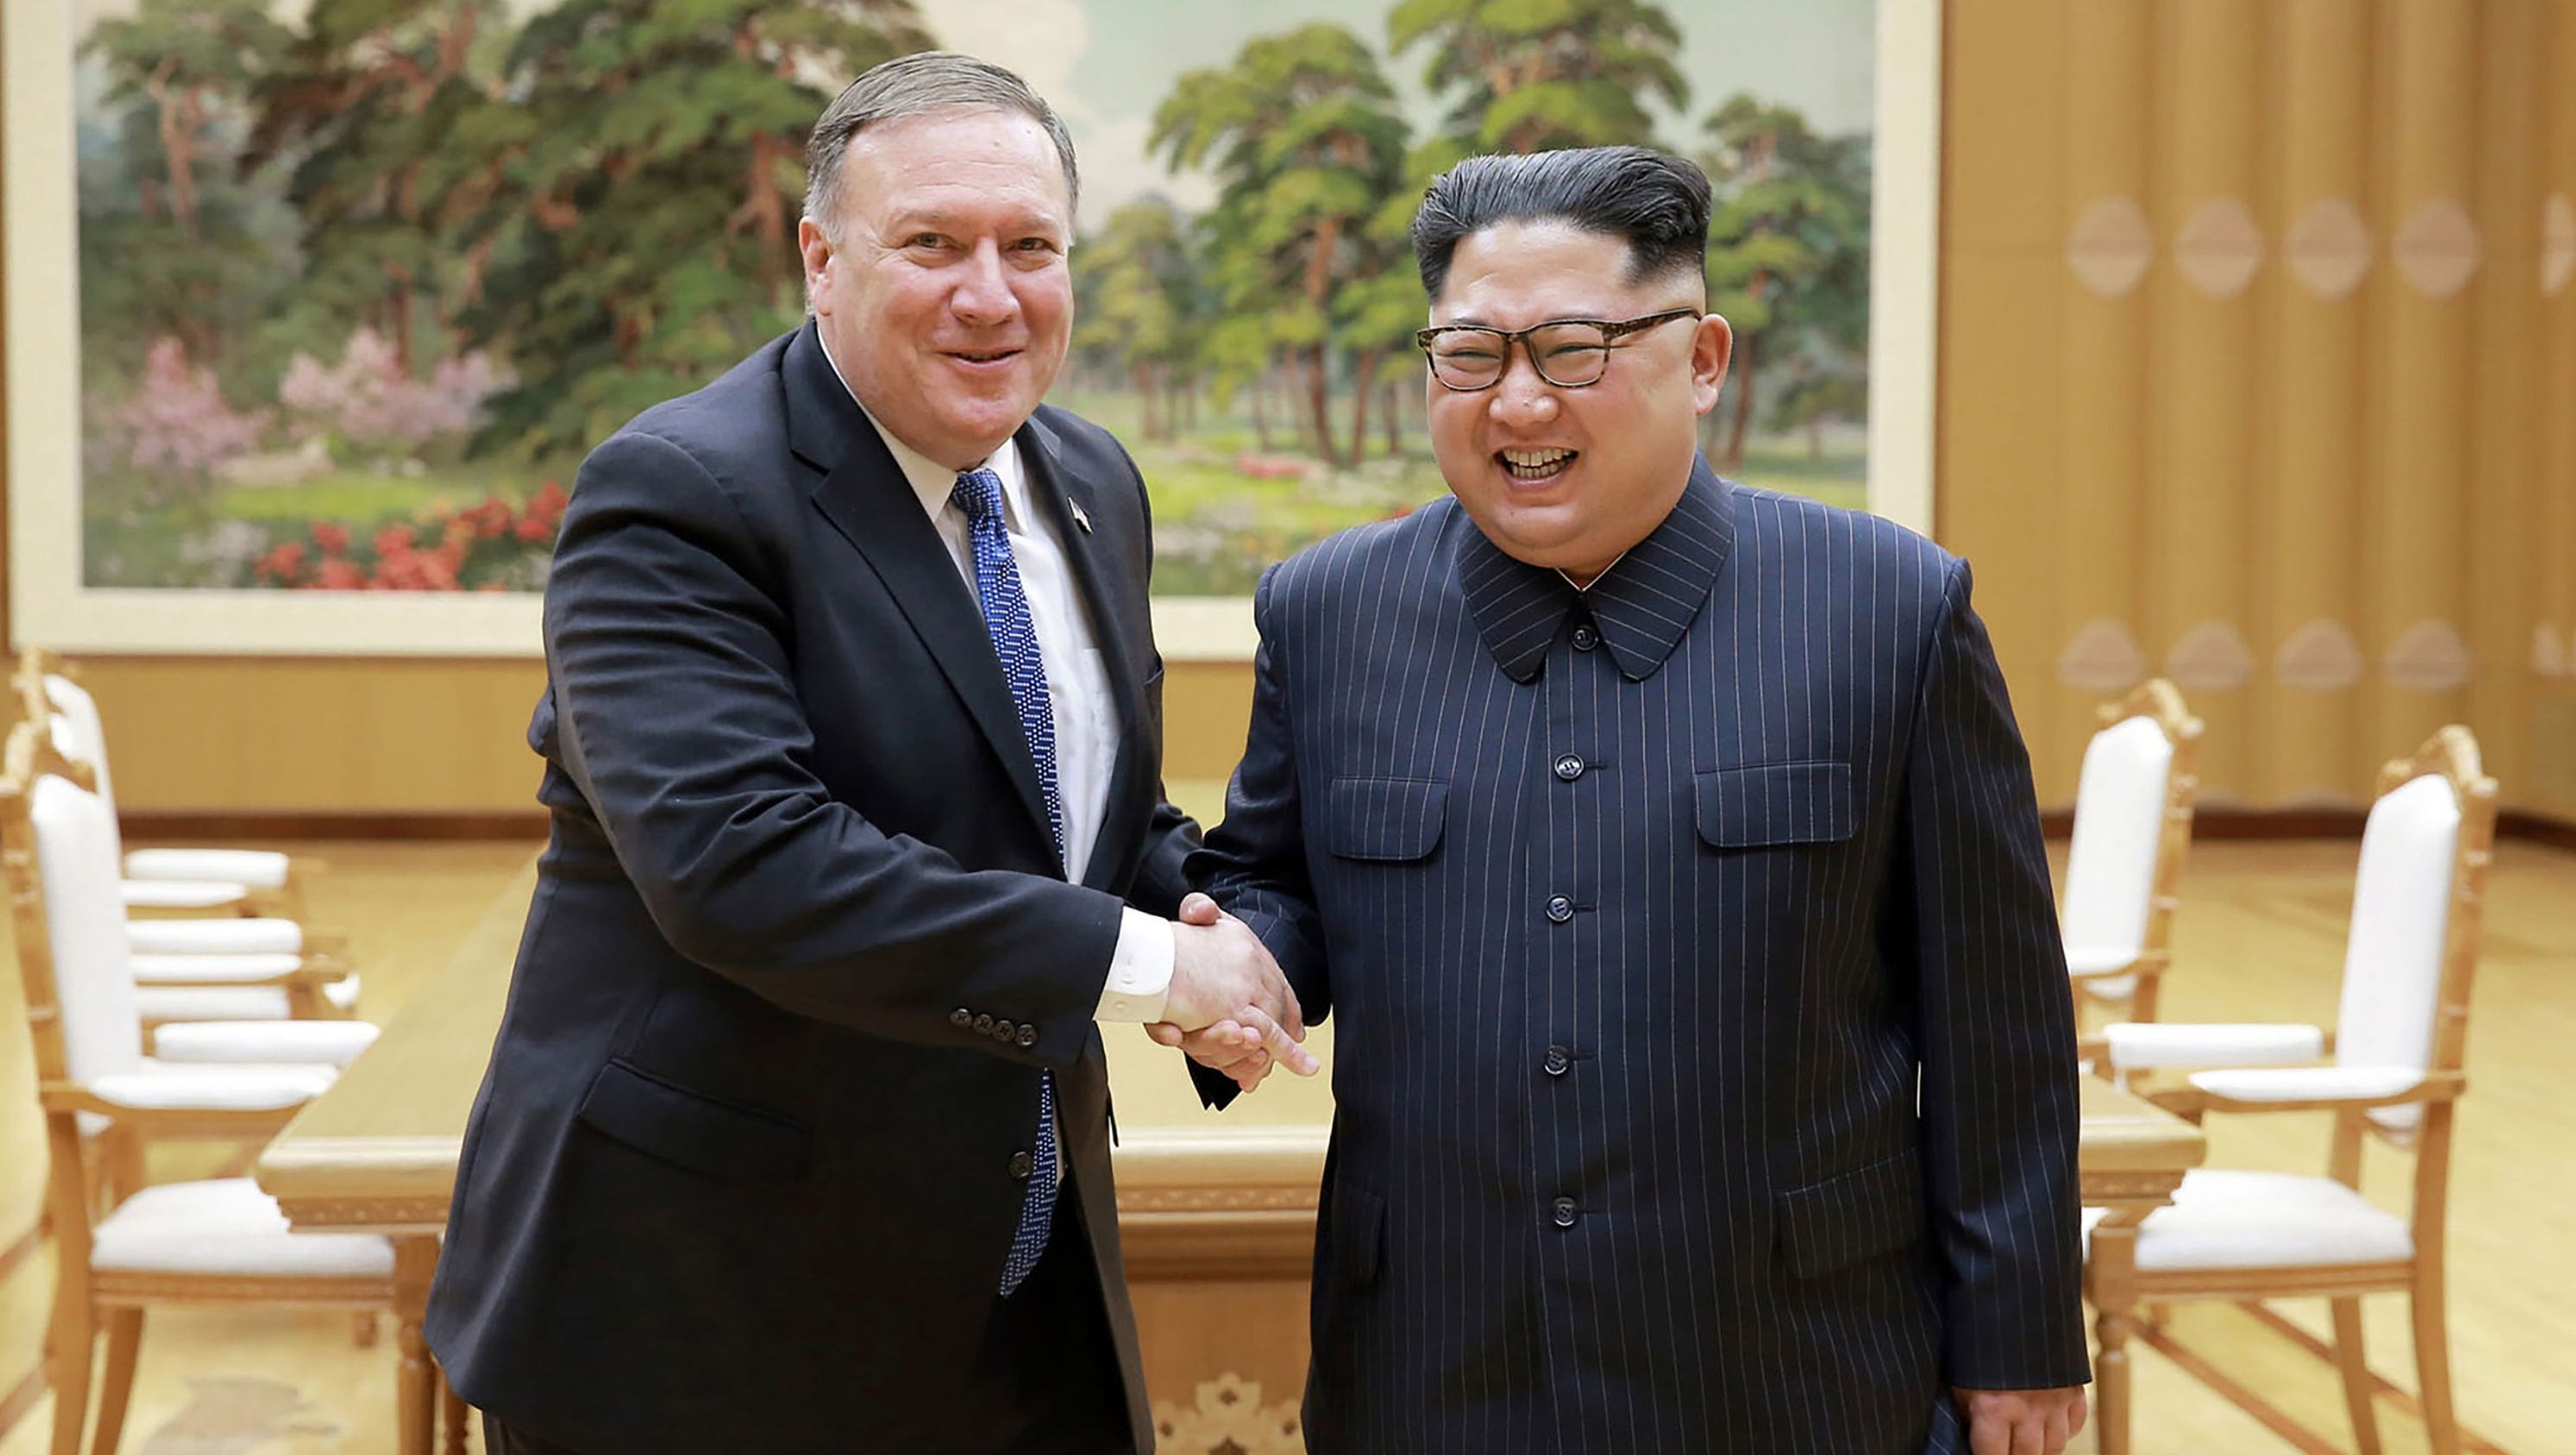 Pompeo suggests U.S. will assist North Korea's economy if it gets rid of nuclear weapons